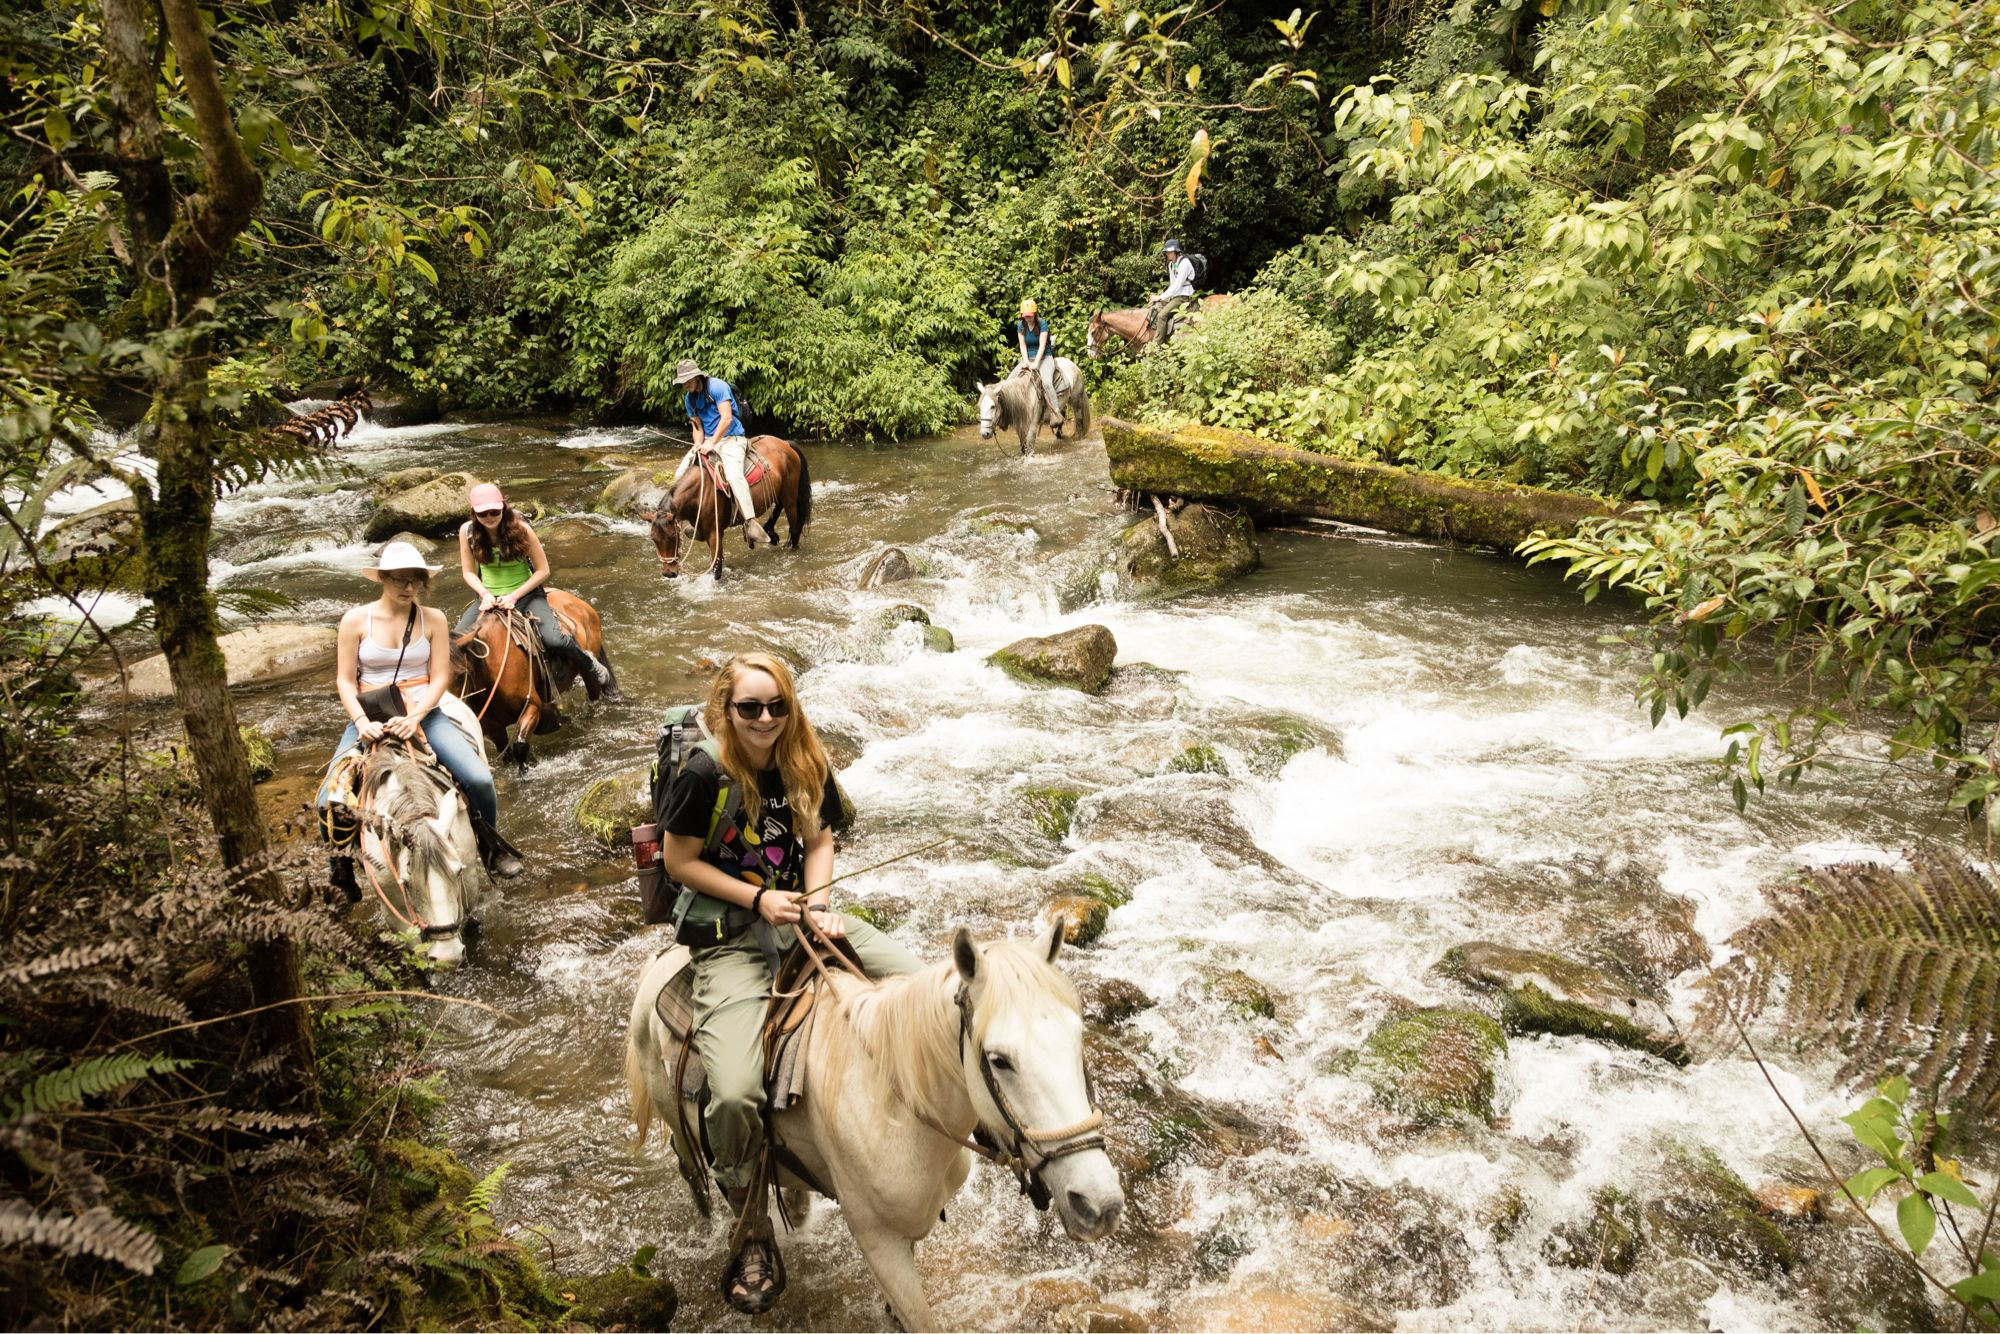 Students cross a river on horseback in a Costa Rican rainforest.